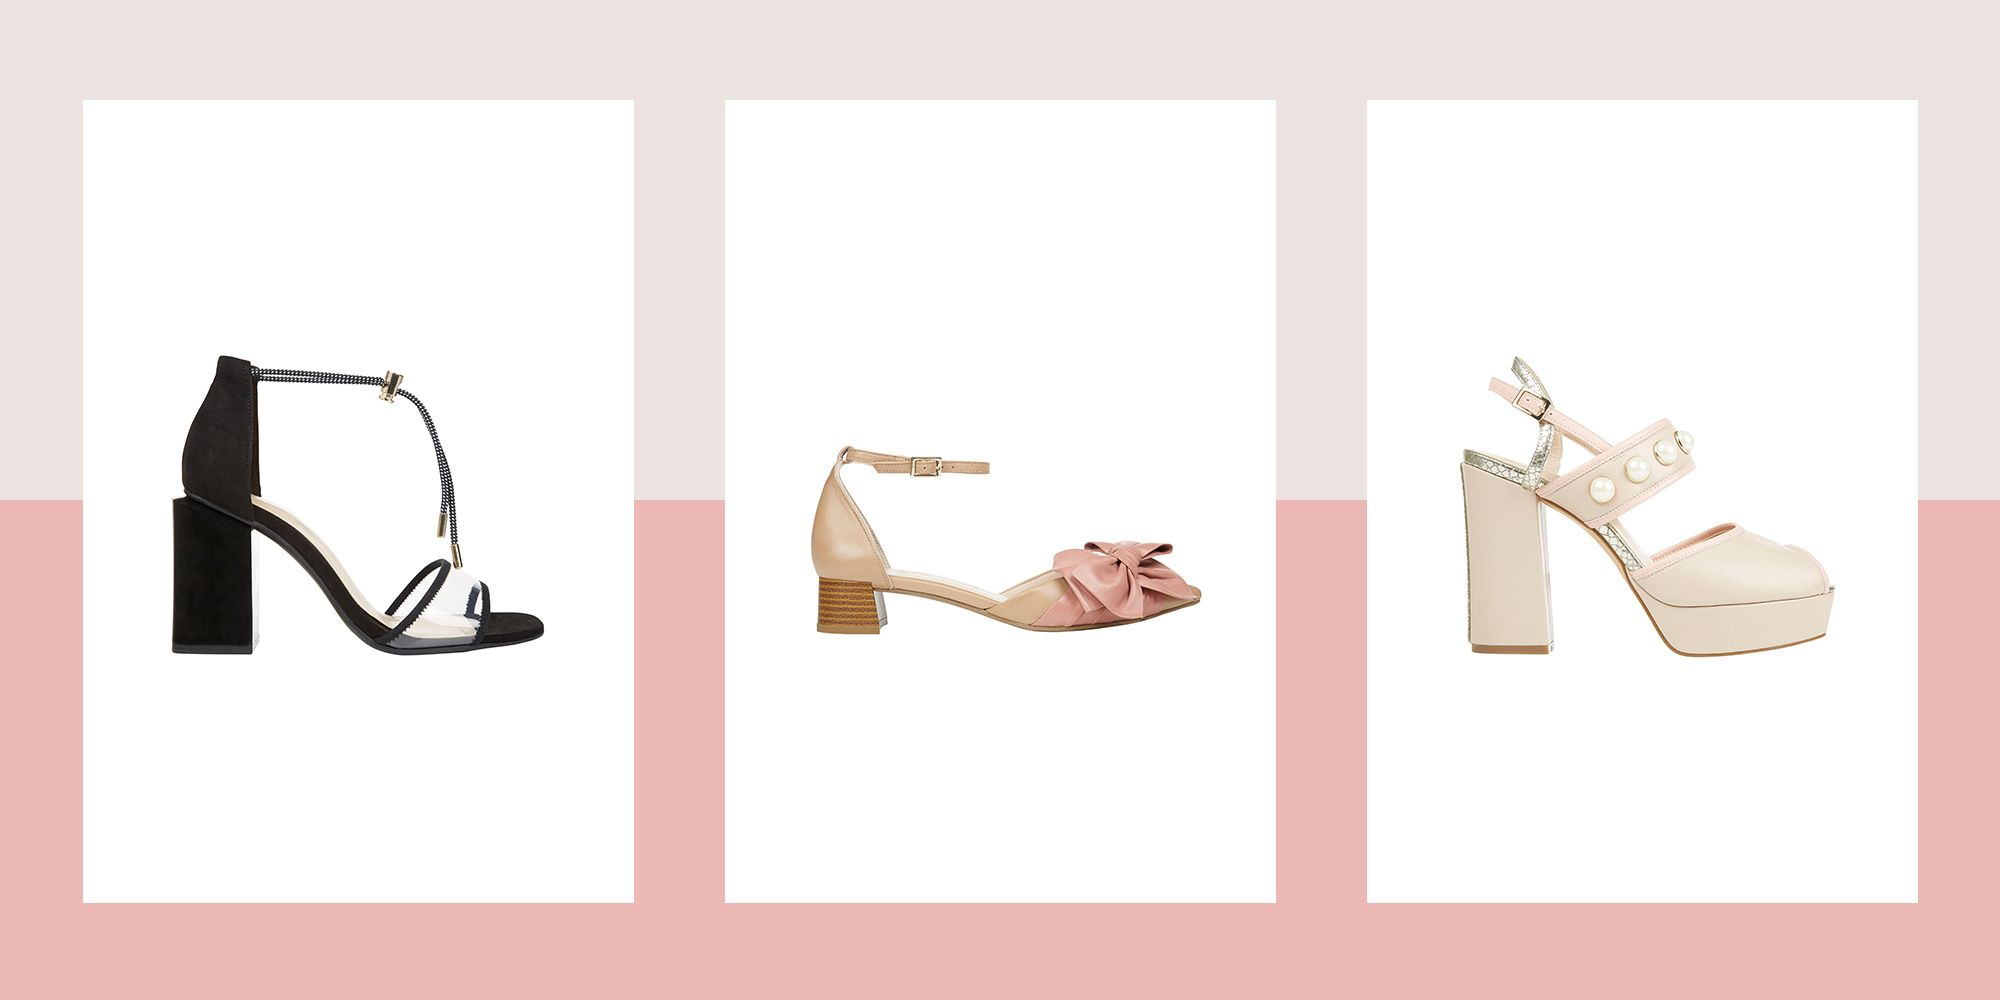 aeb0bd23bb5 Marks & Spencer announces exciting footwear collection designed by ...